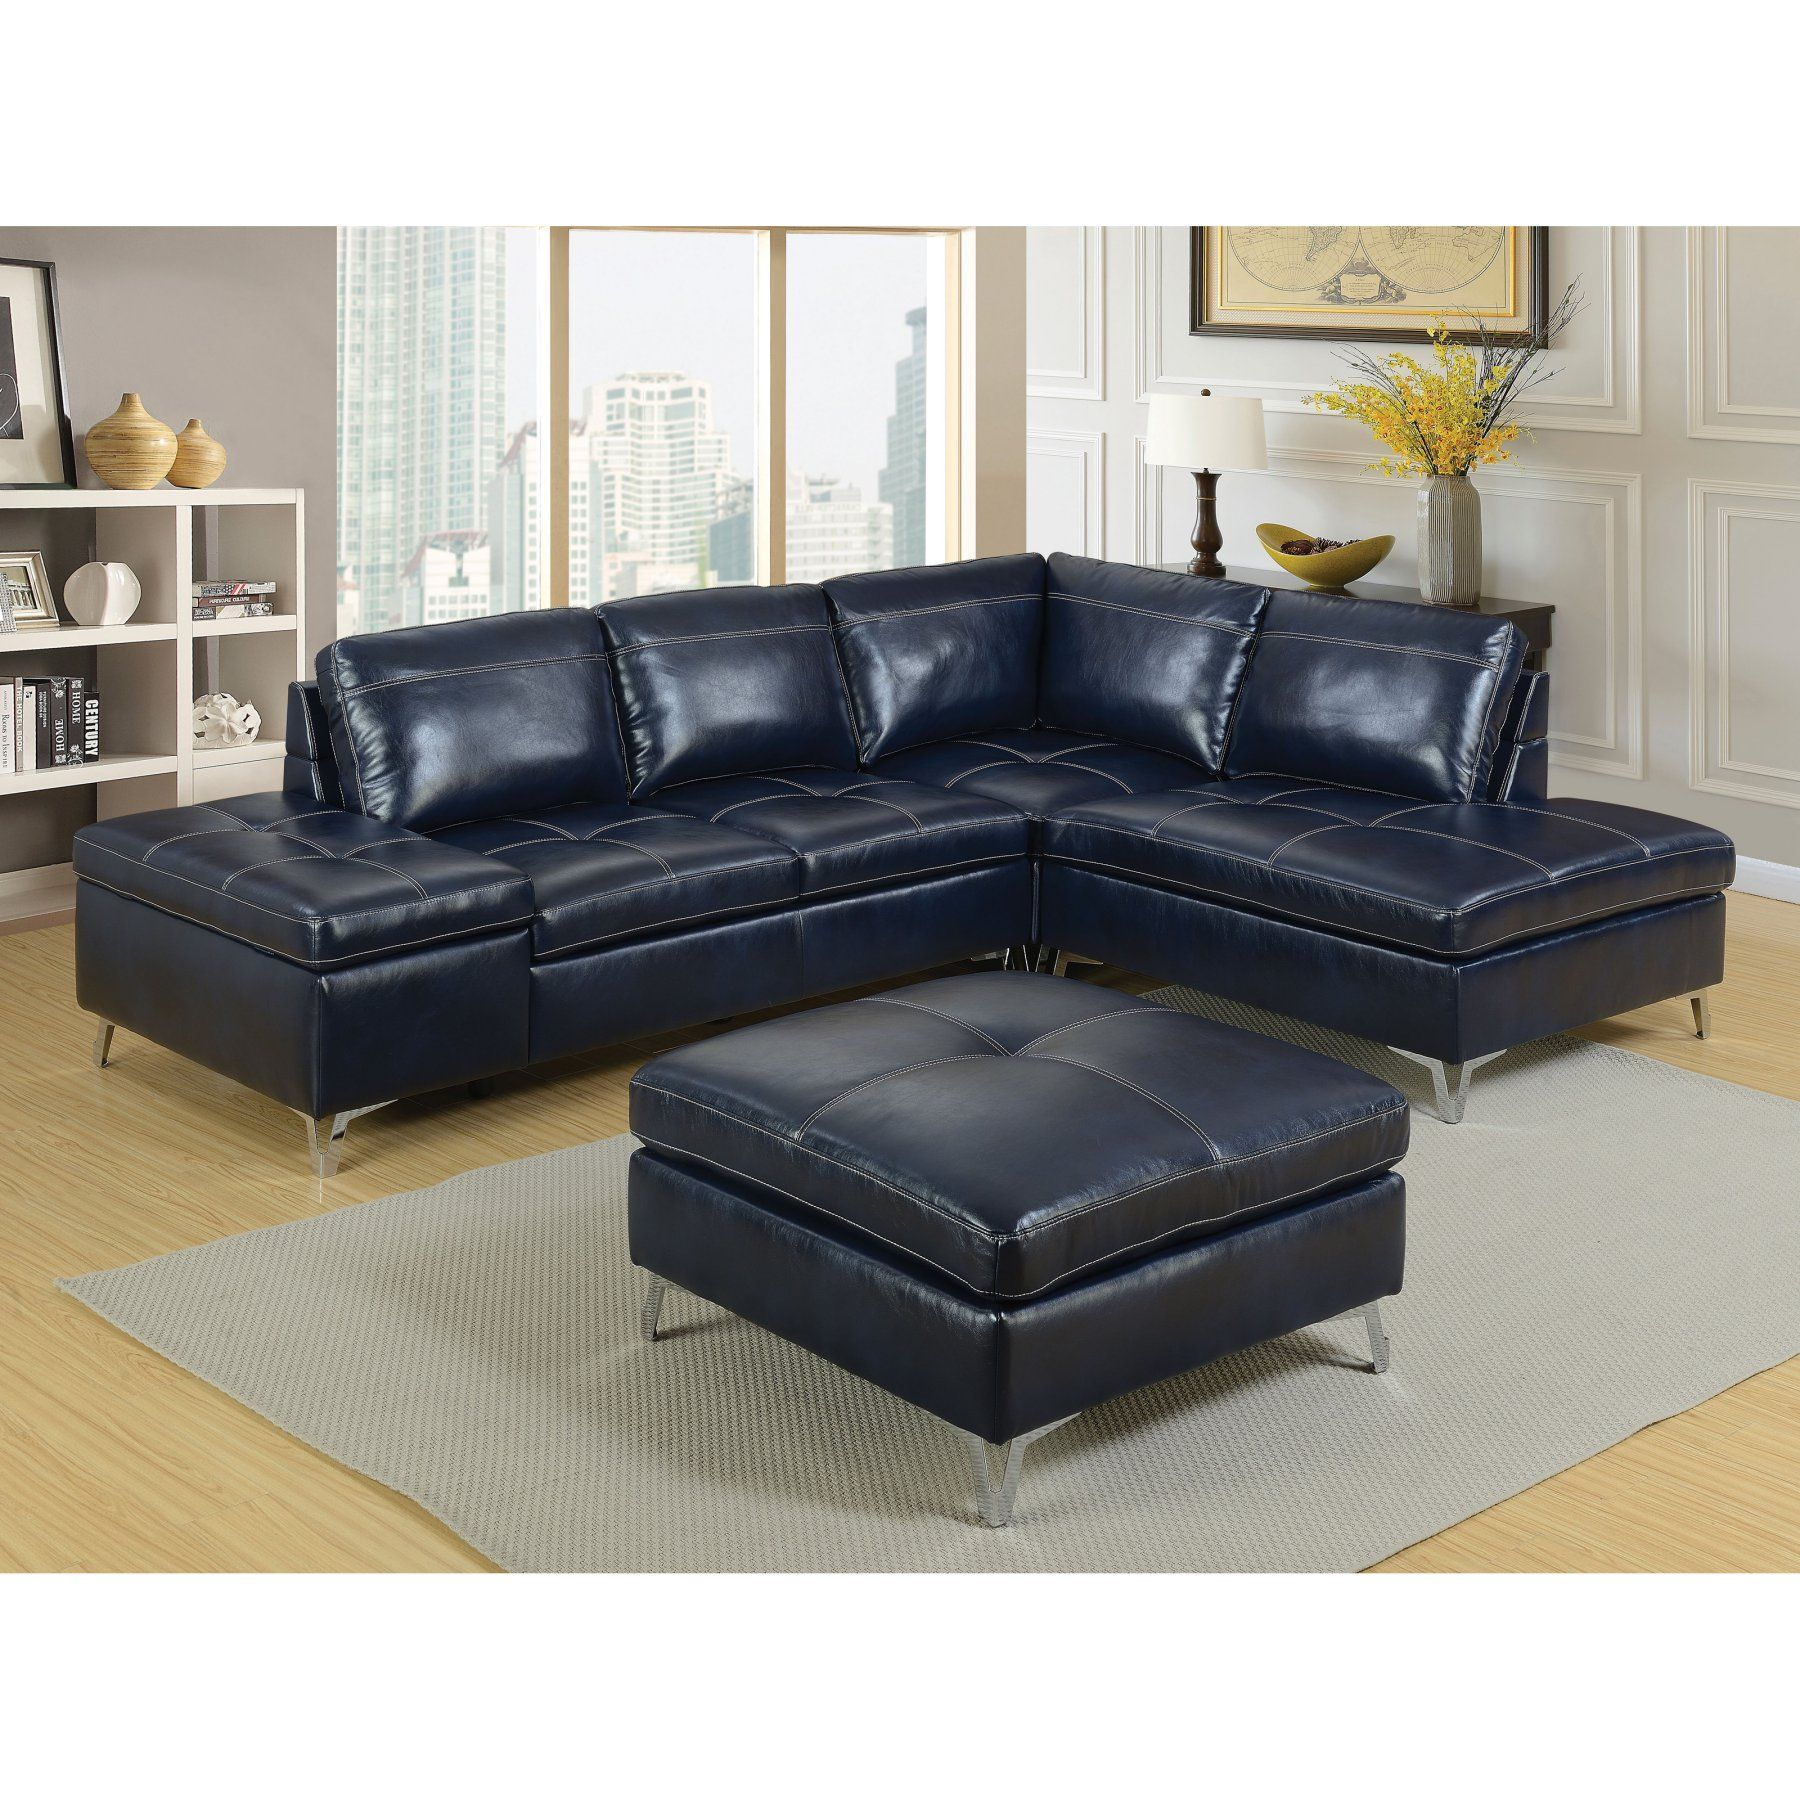 Furniture Of America Brandon Sectional Sofa With Ottoman Idf